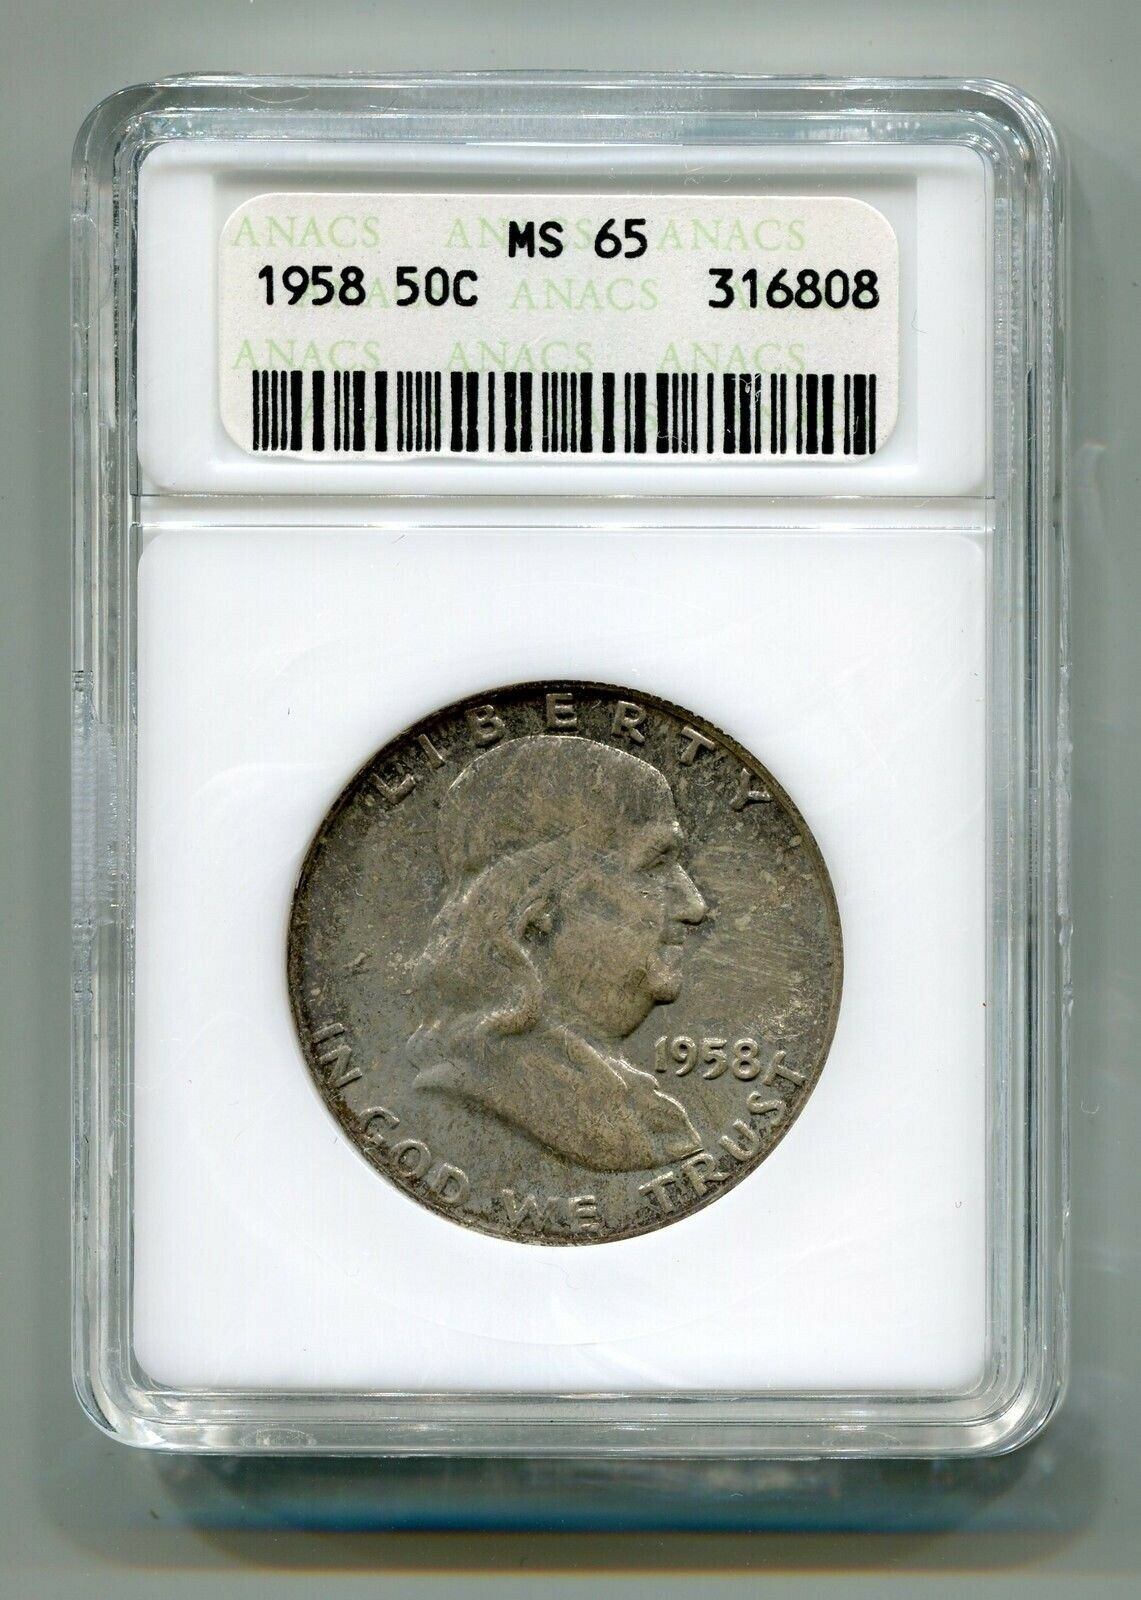 Primary image for 1958 FRANKLIN HALF ANACS MS65 NICE COLOR NICE ORIGINAL COIN FROM BOBS COINS